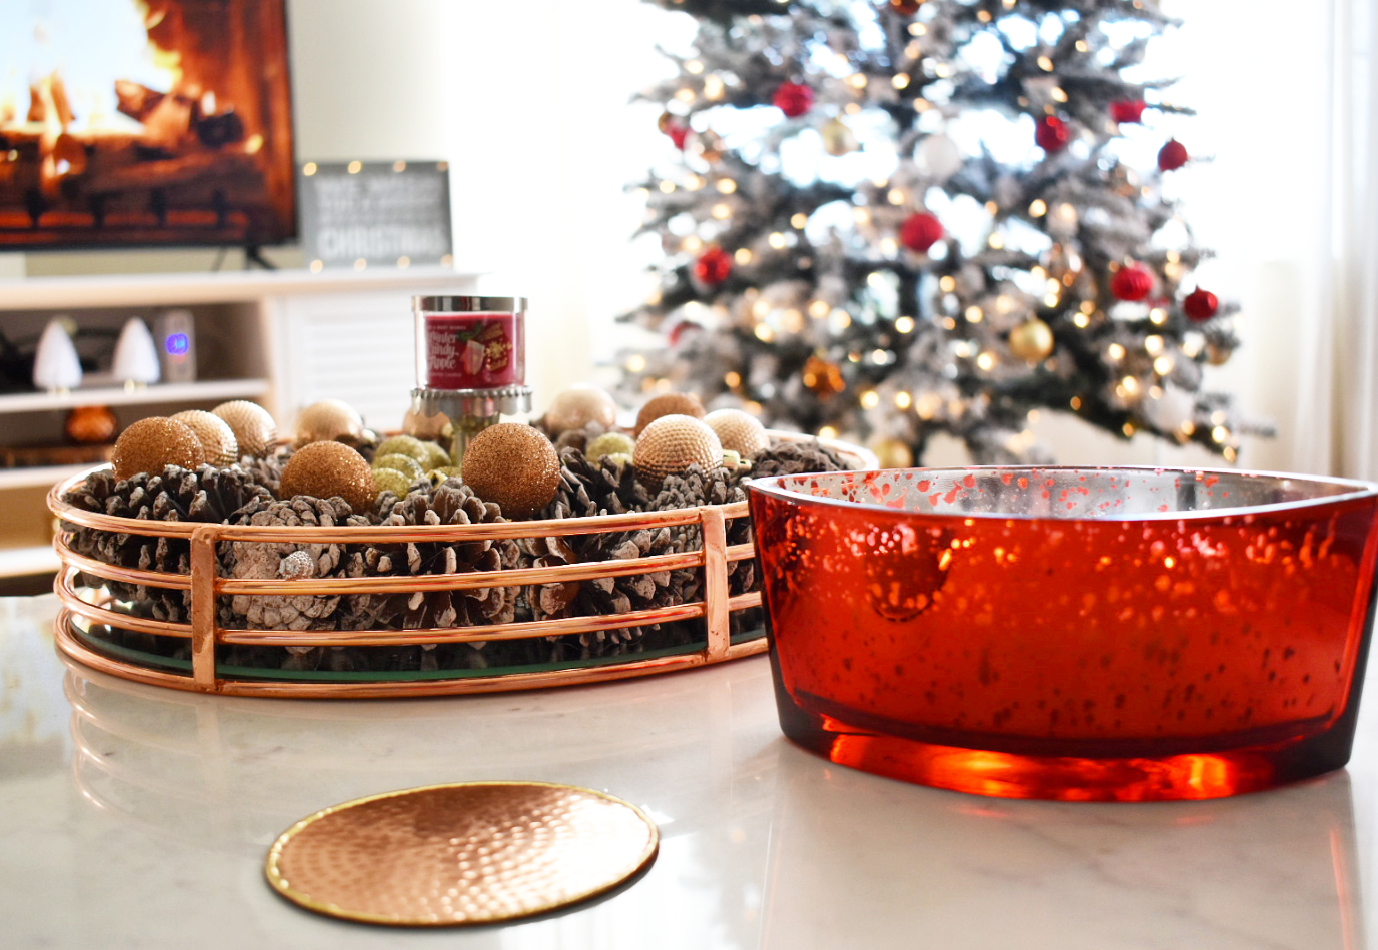 The Winter Candy Apple Candle And Candle Holder Are From Bath & Body Works  The Pine Cones And Smaller Ornaments Are From Hobby Lobby